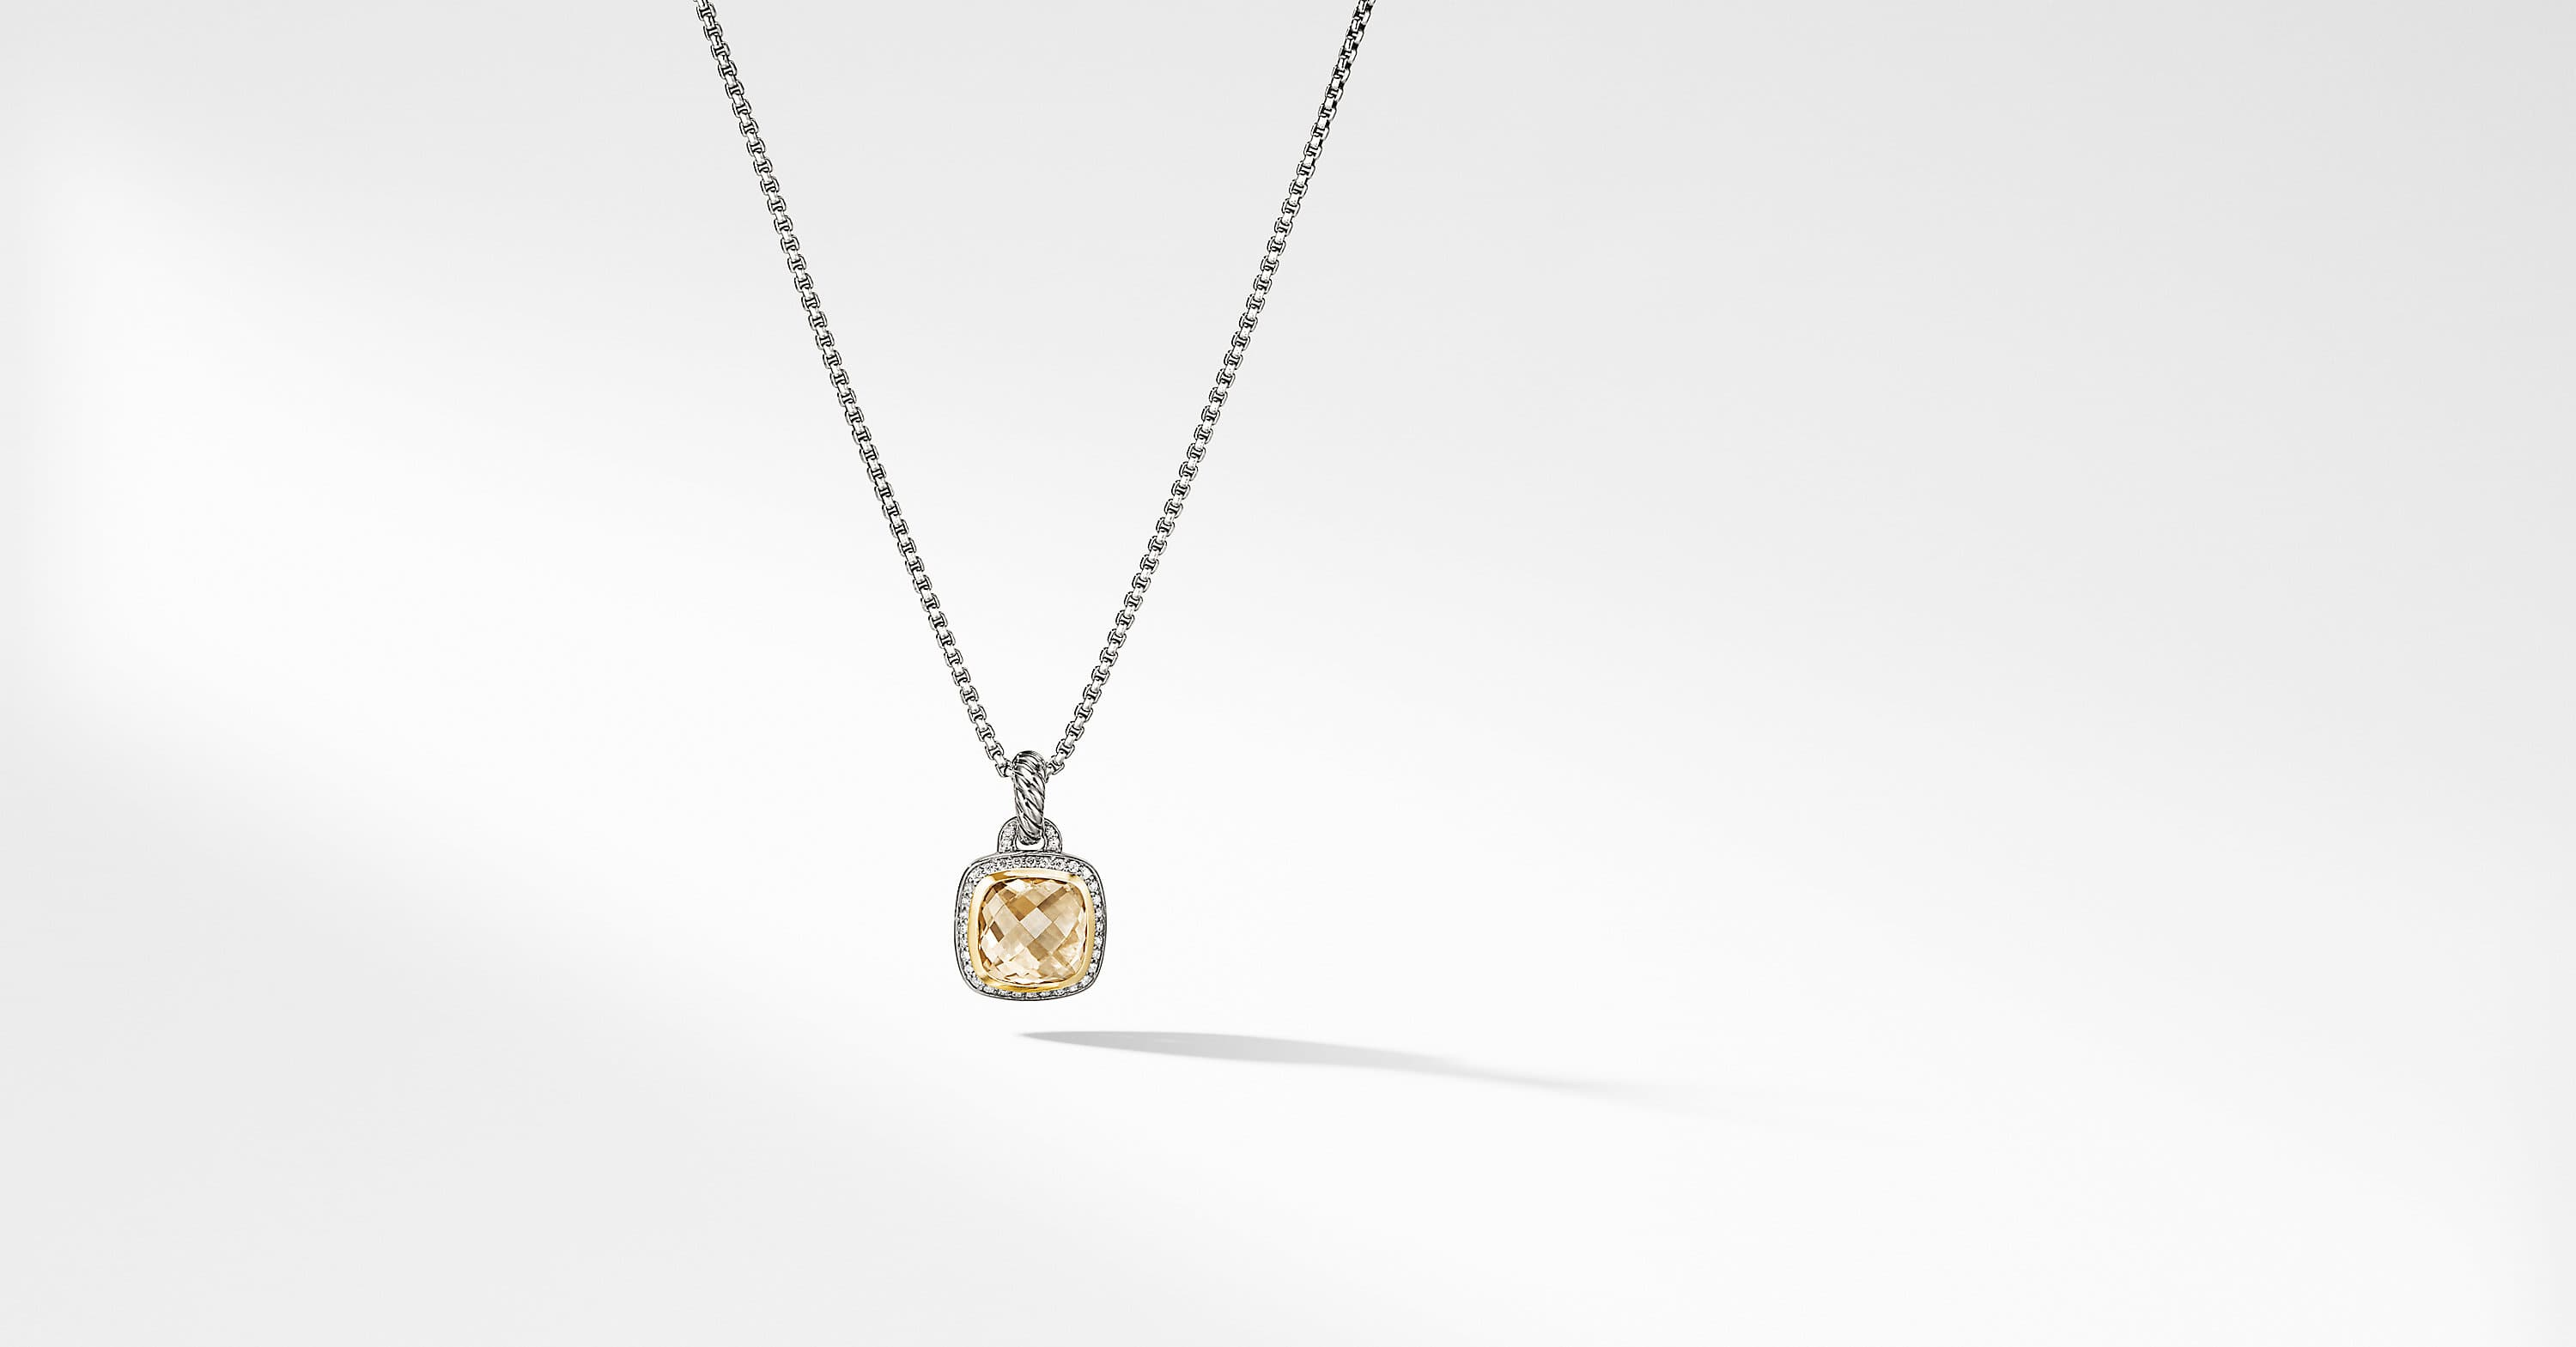 Albion Pendant with Diamonds and 18K Gold, 11mm